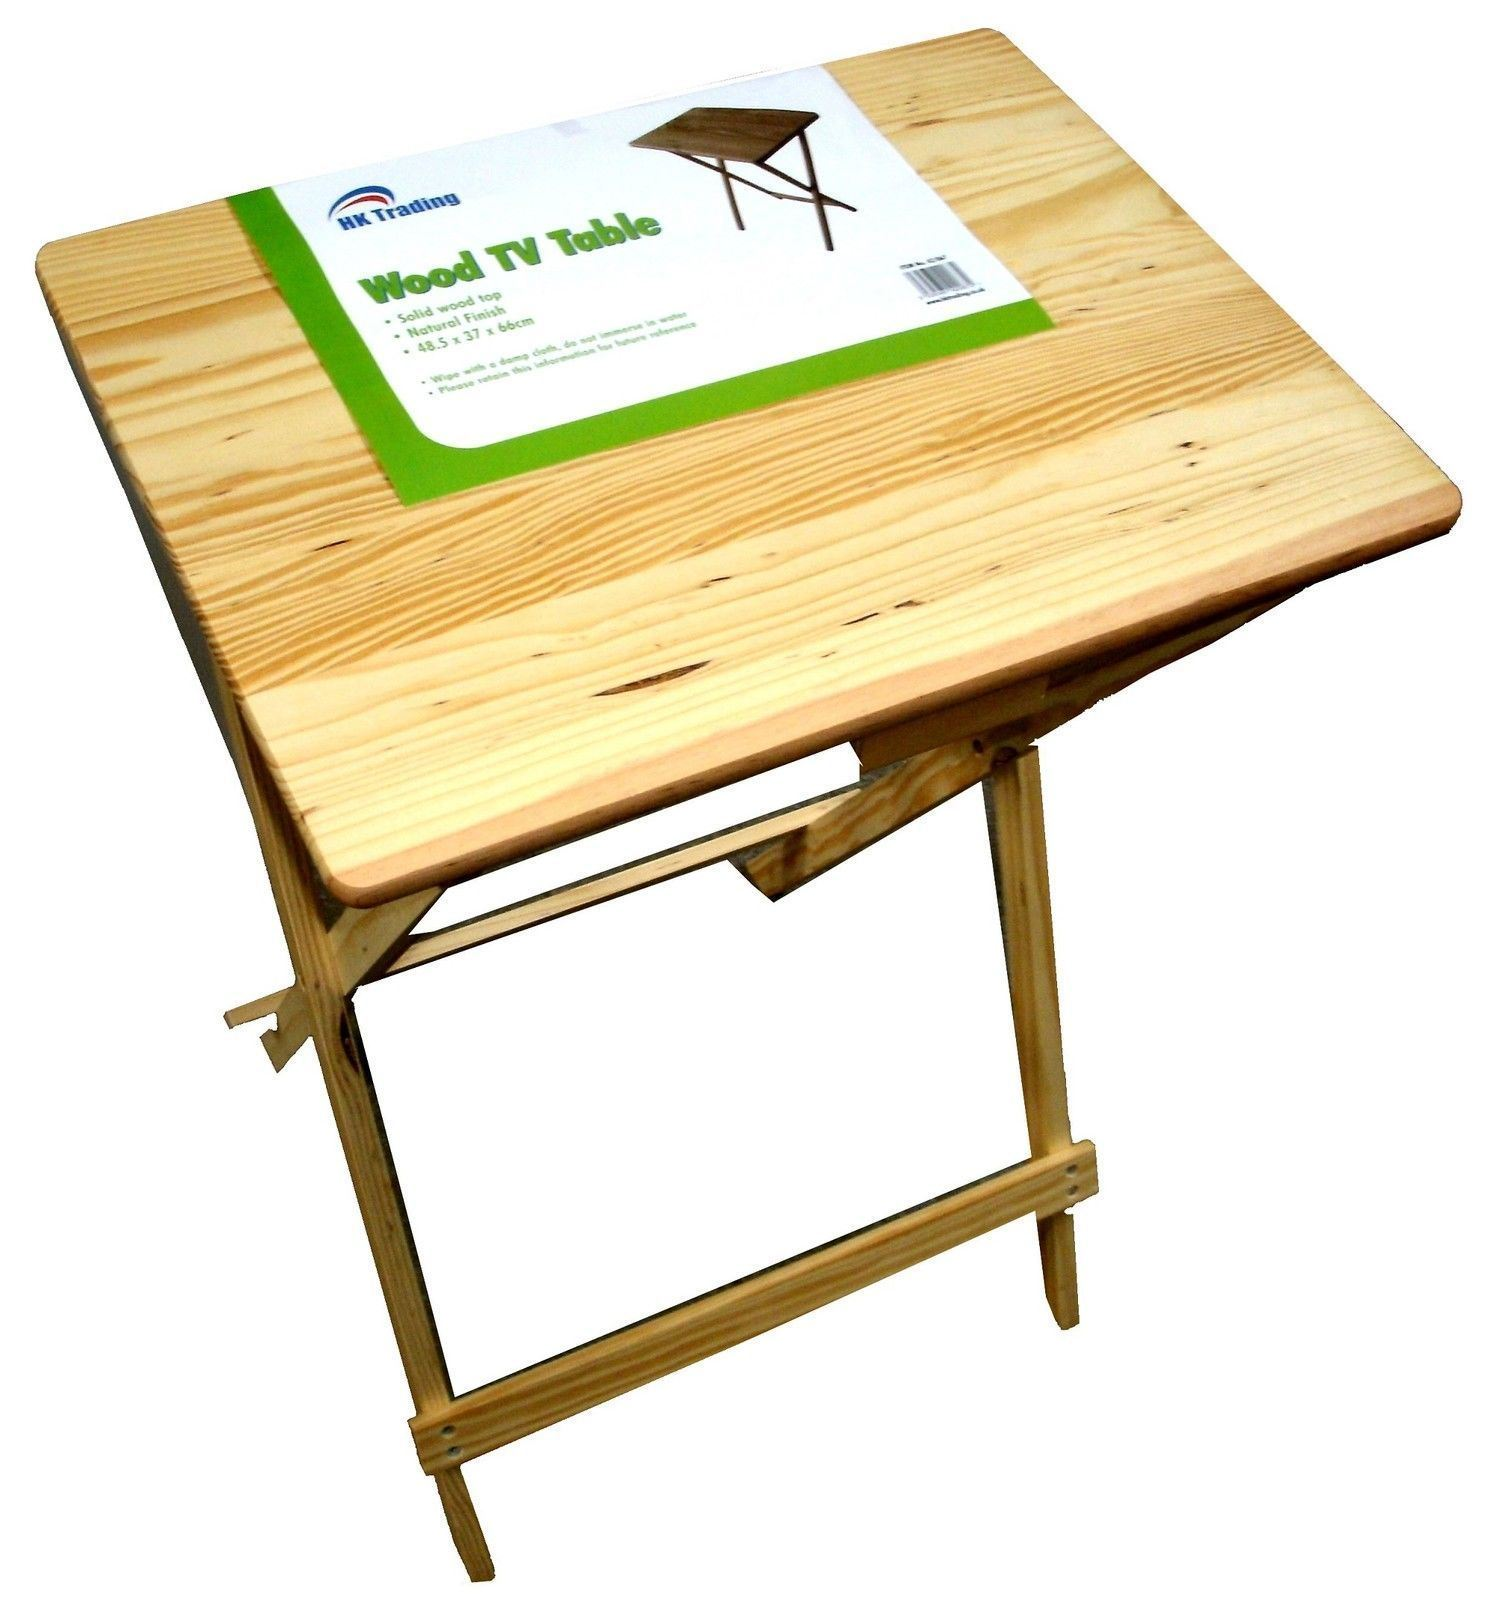 Portable folding table wooden compact folding portable for Portable wooden house